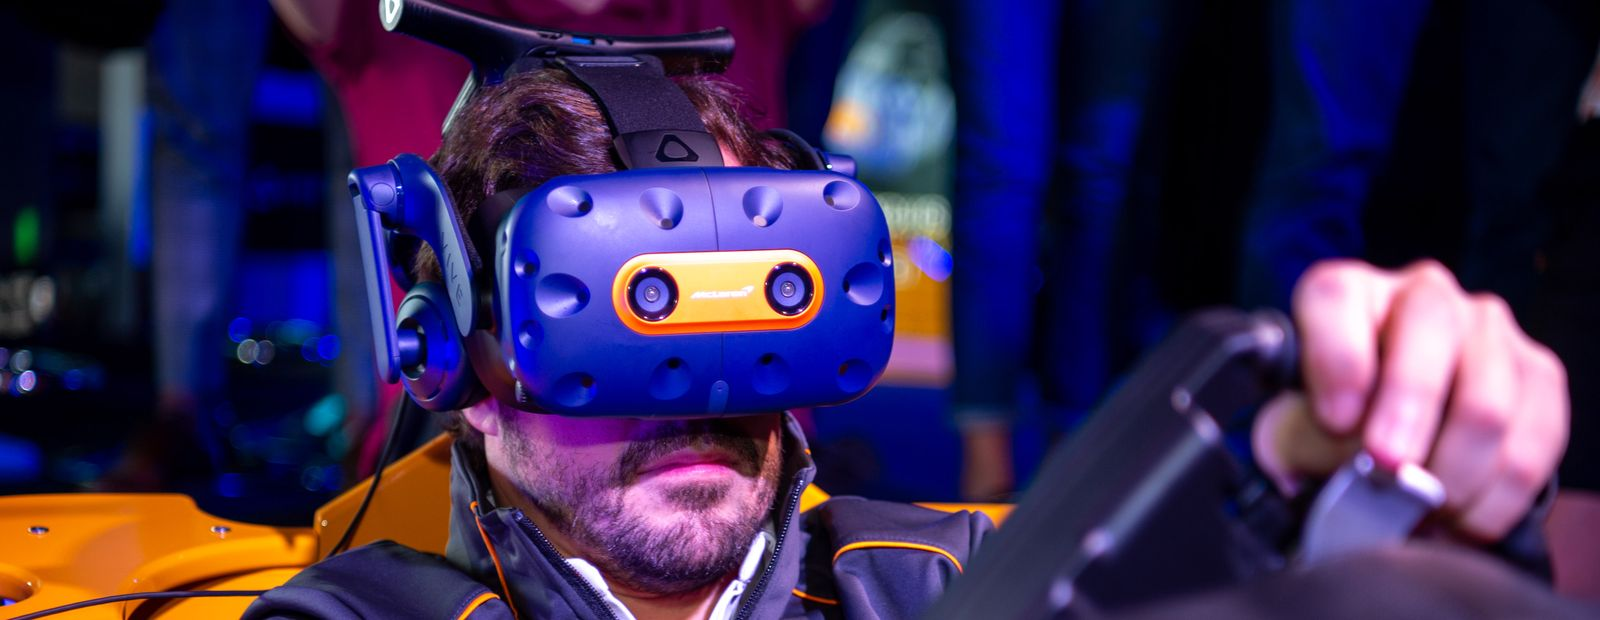 McLaren and HTC VIVE announce release of limited edition VIVE Pro headset